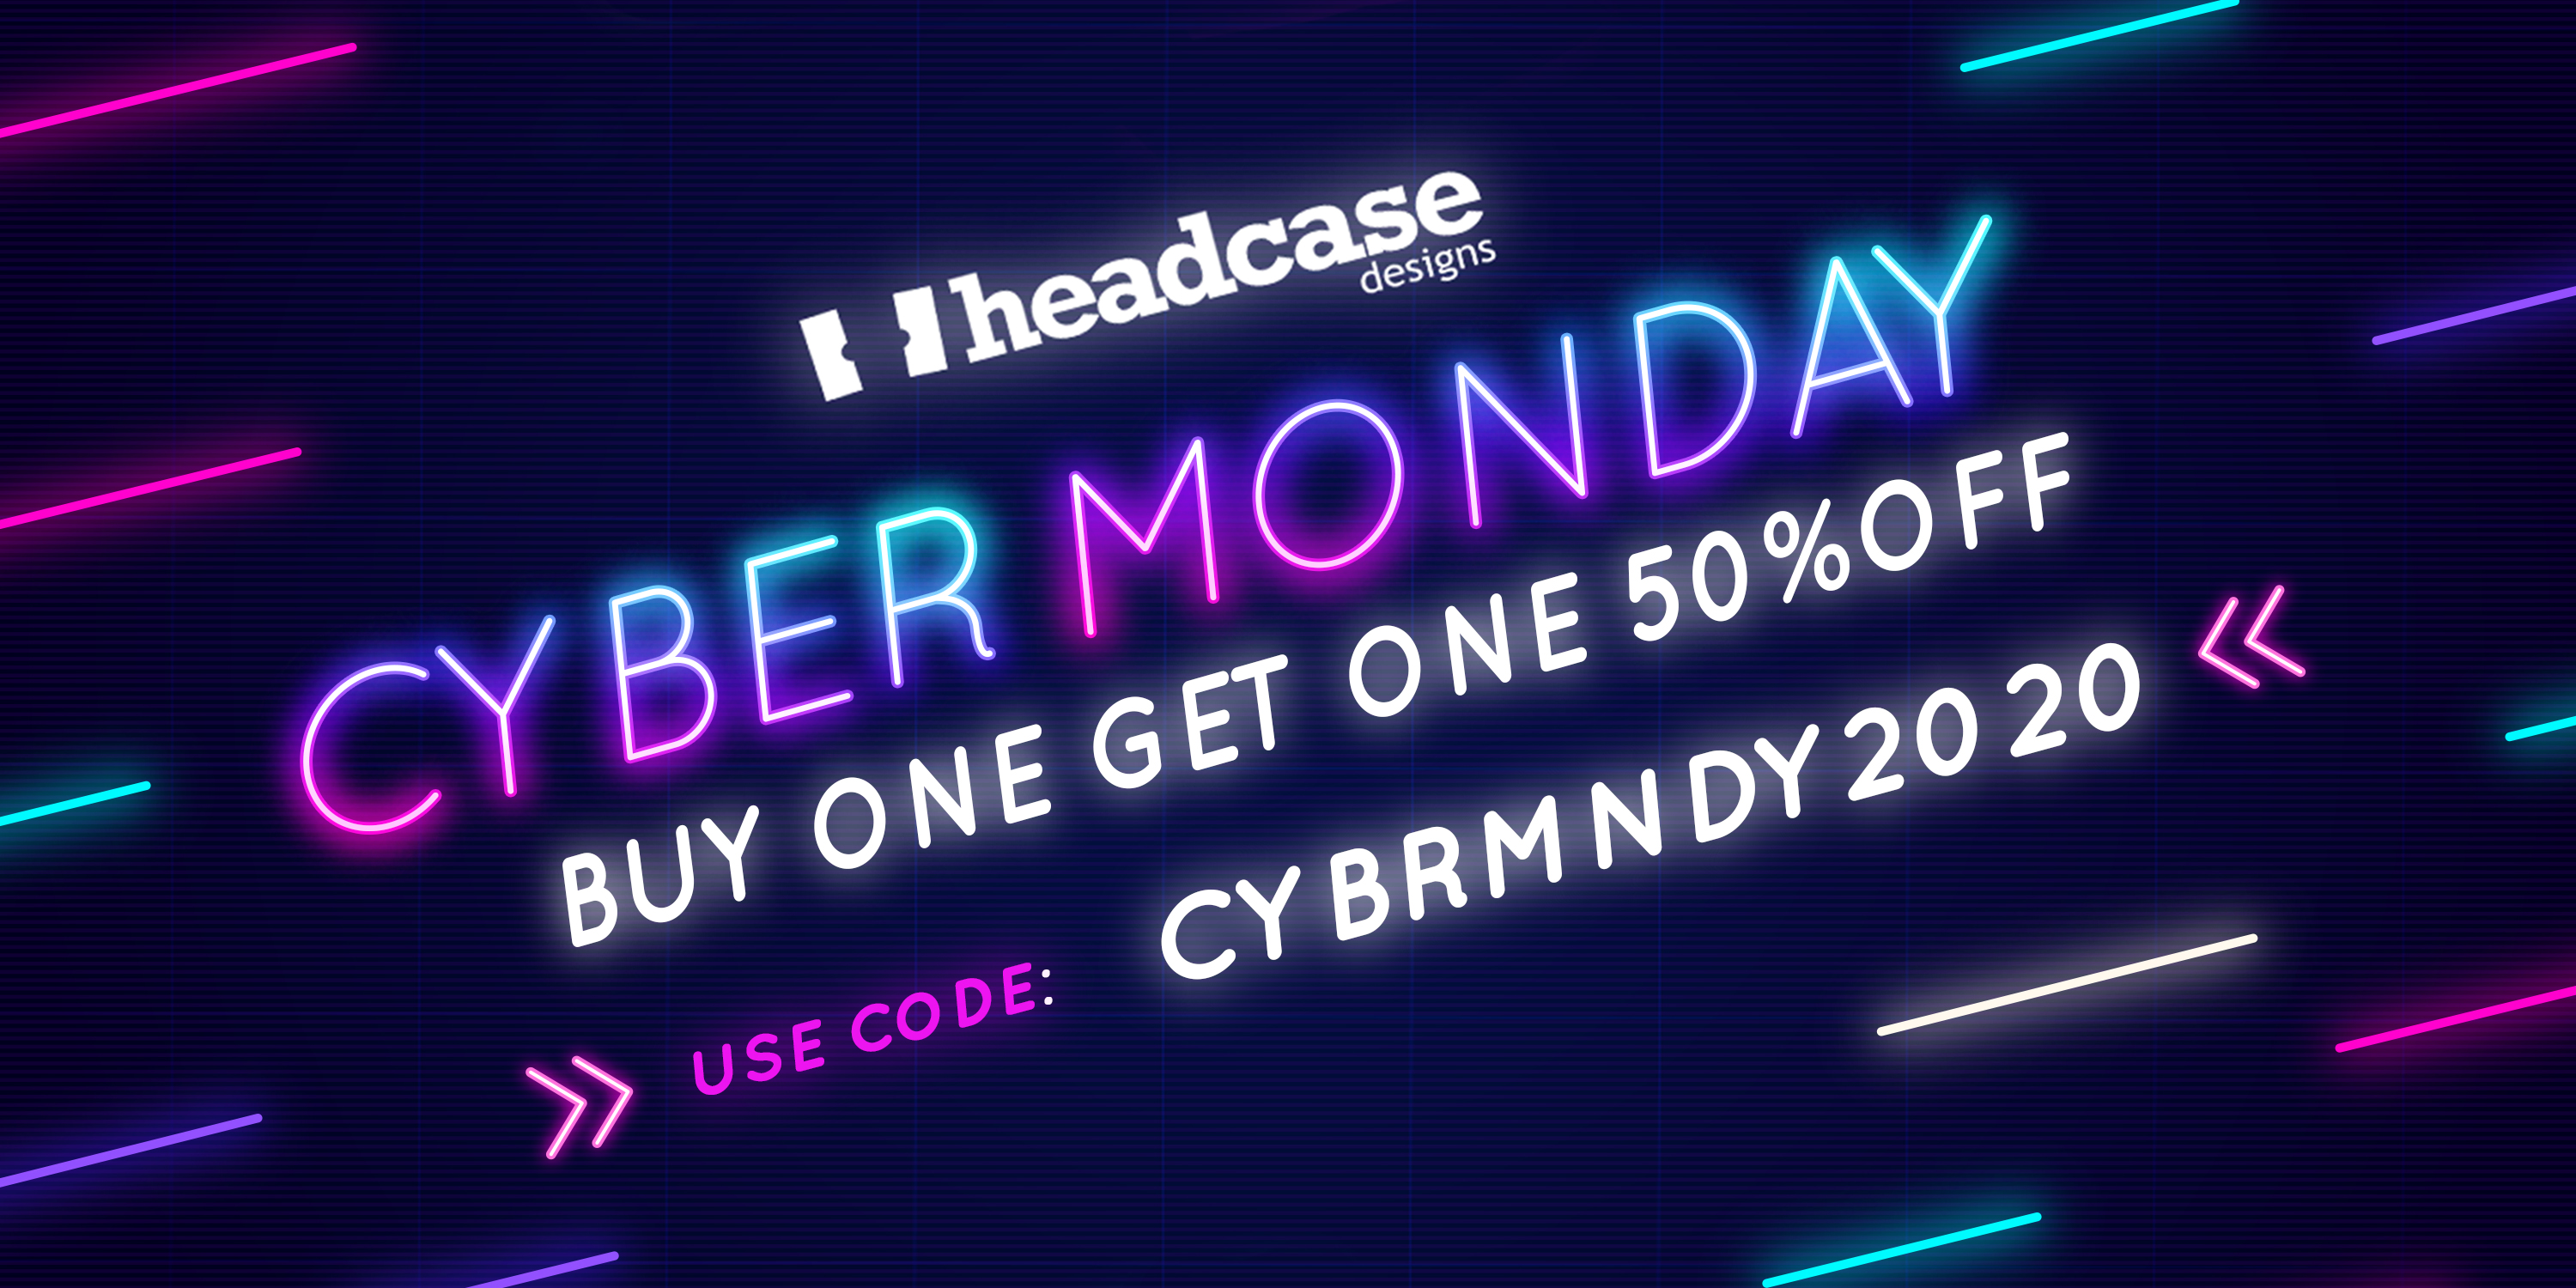 Cyber Monday 2020 Sale Banner